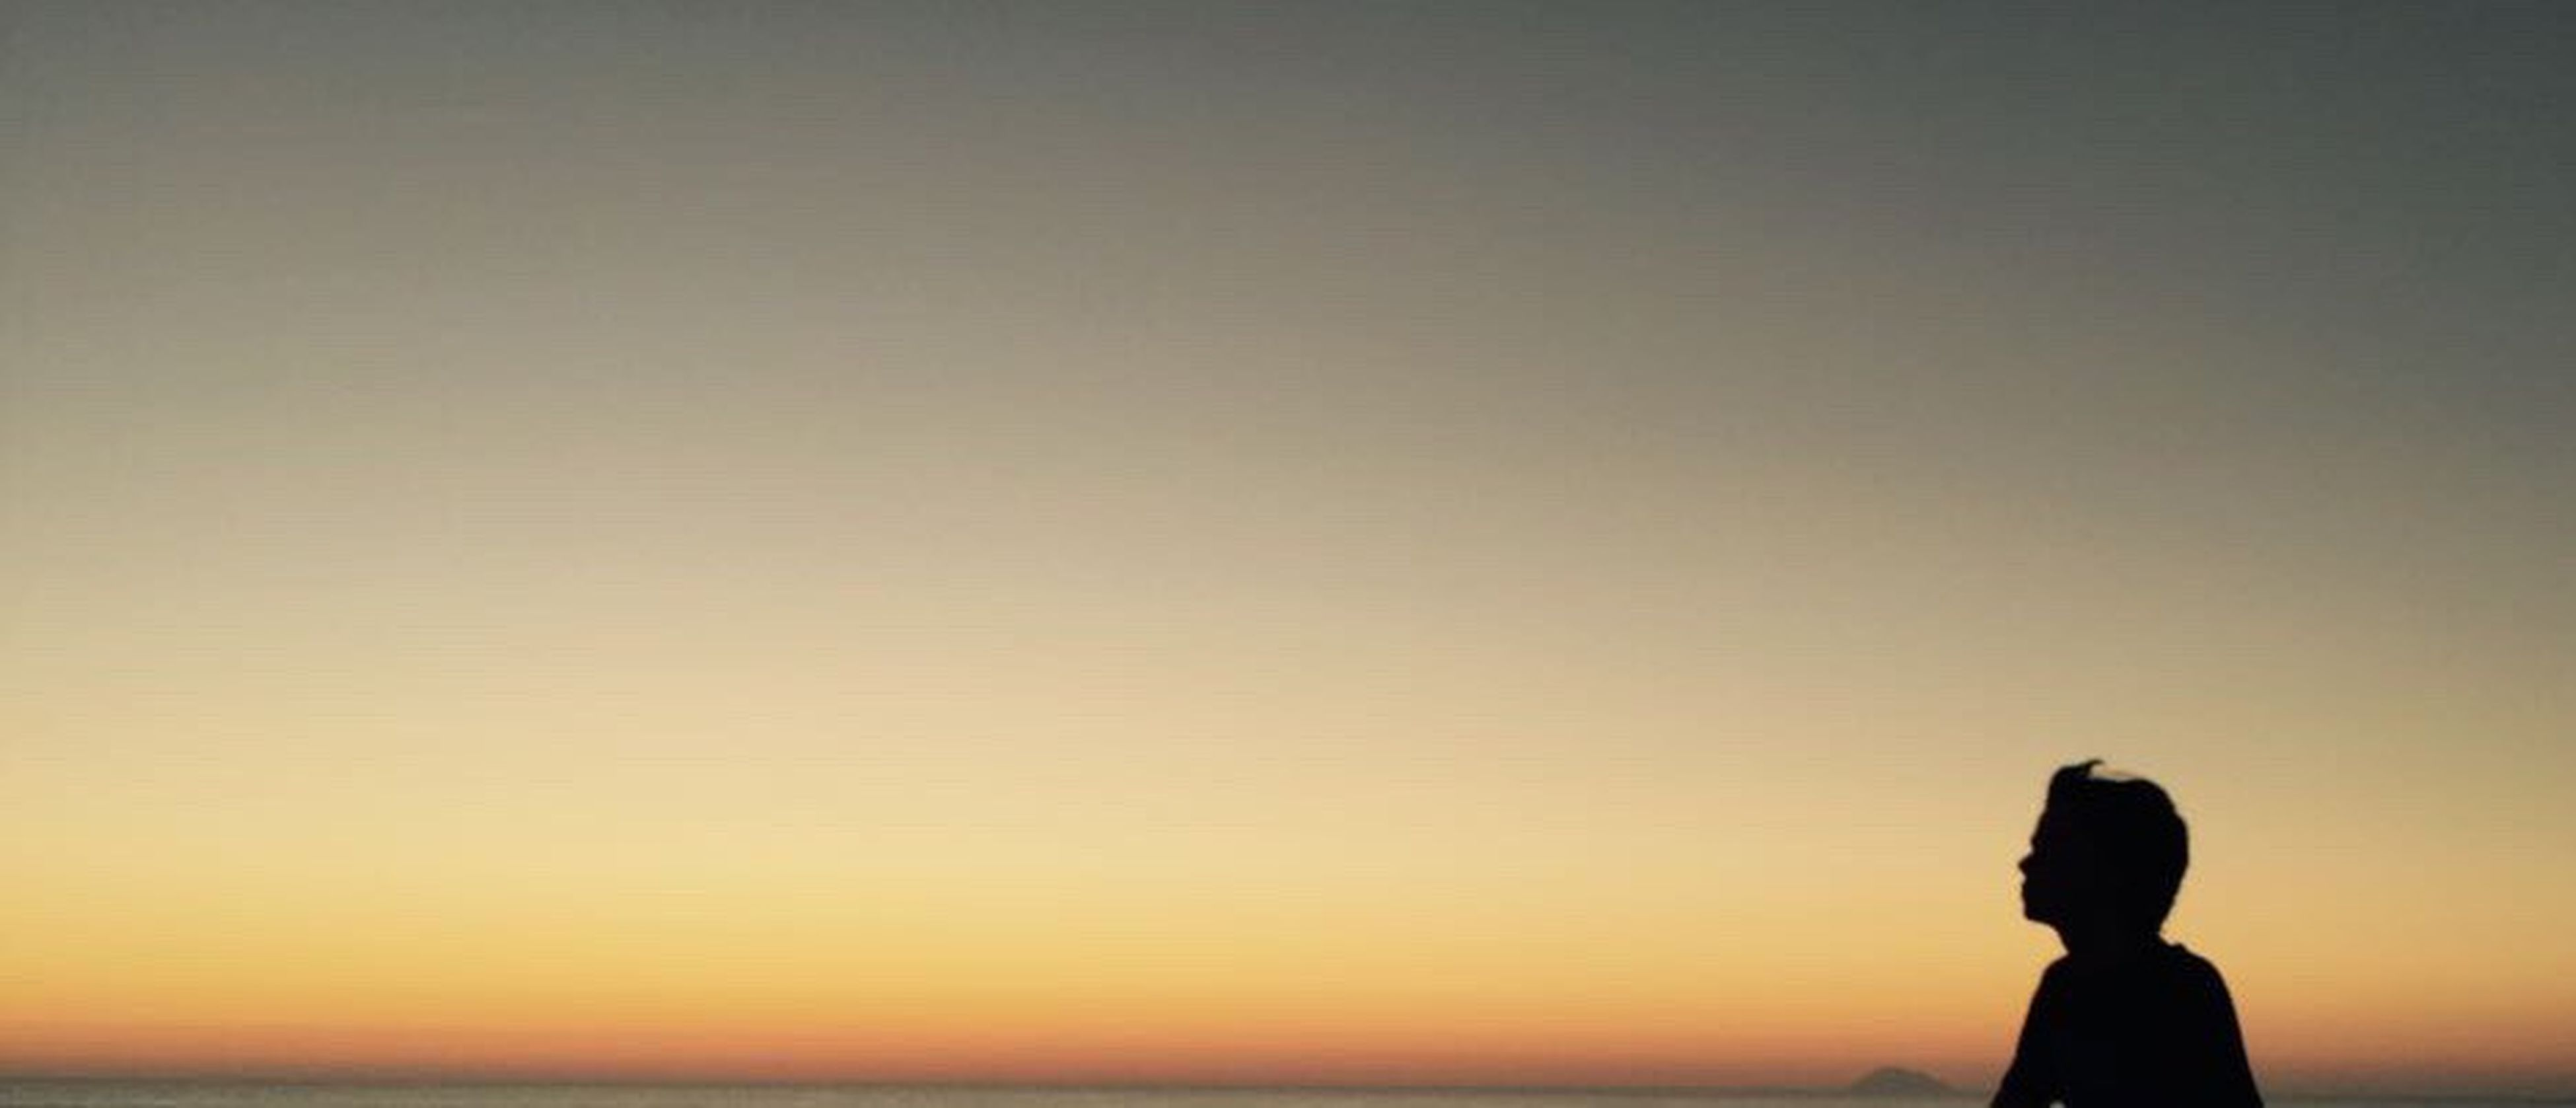 silhouette, sunset, copy space, one person, tranquil scene, sky, beauty in nature, clear sky, childhood, outdoors, only women, women, people, nature, one woman only, females, child, adult, sea, horizon over water, one young woman only, young adult, day